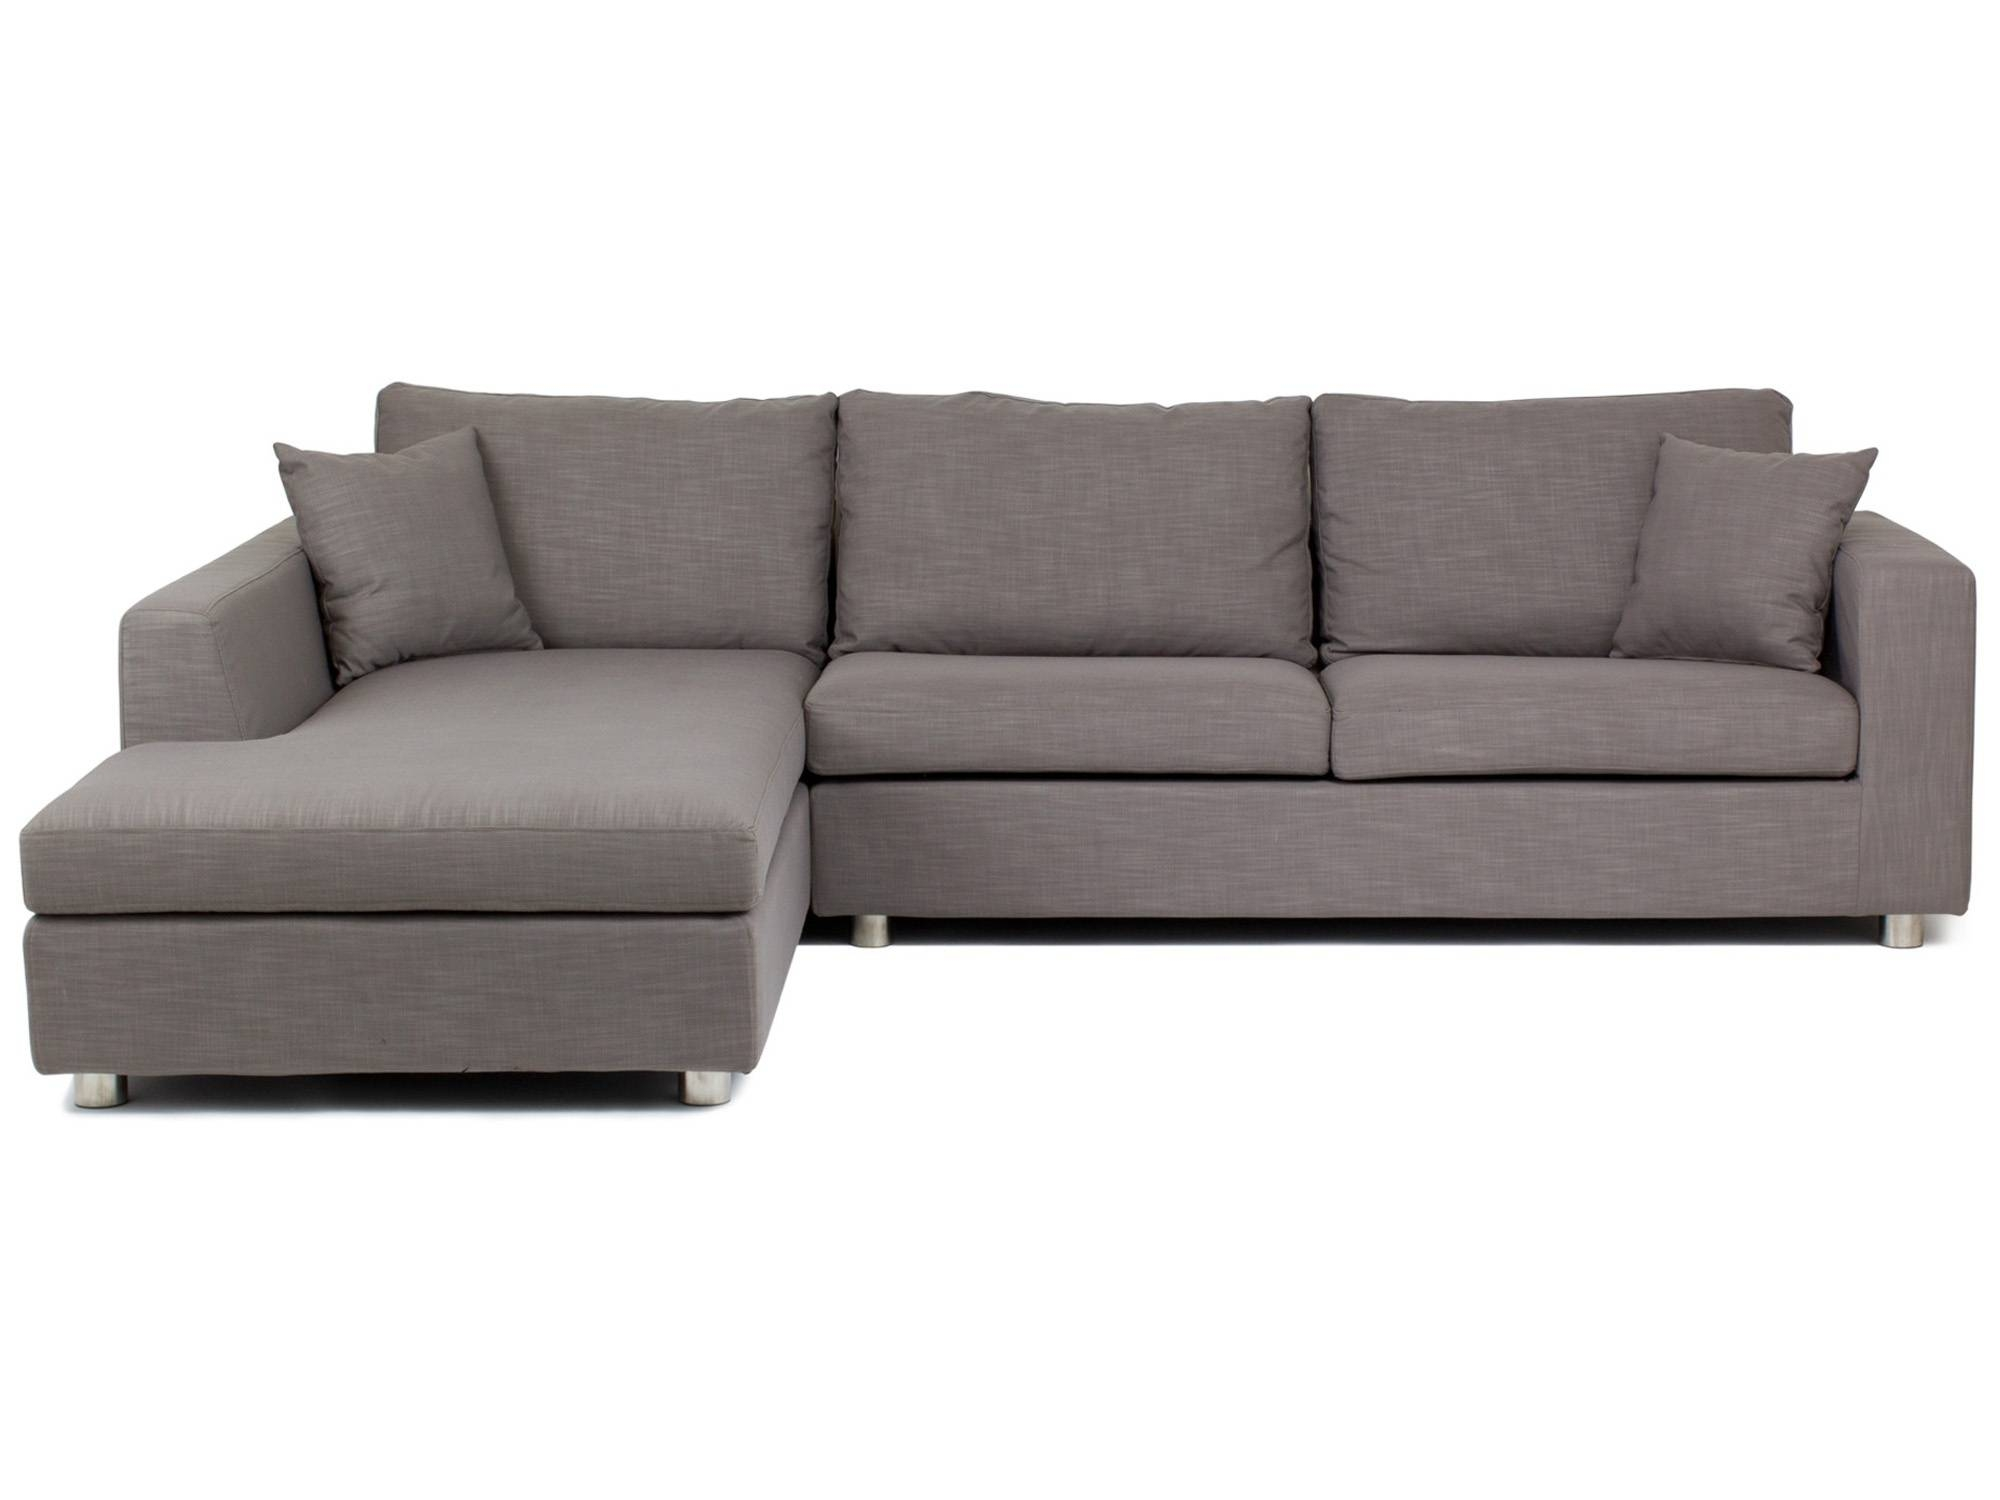 Sofa Bed Chaise With Storage | Tehranmix Decoration throughout Storage Sofa Beds (Image 16 of 30)